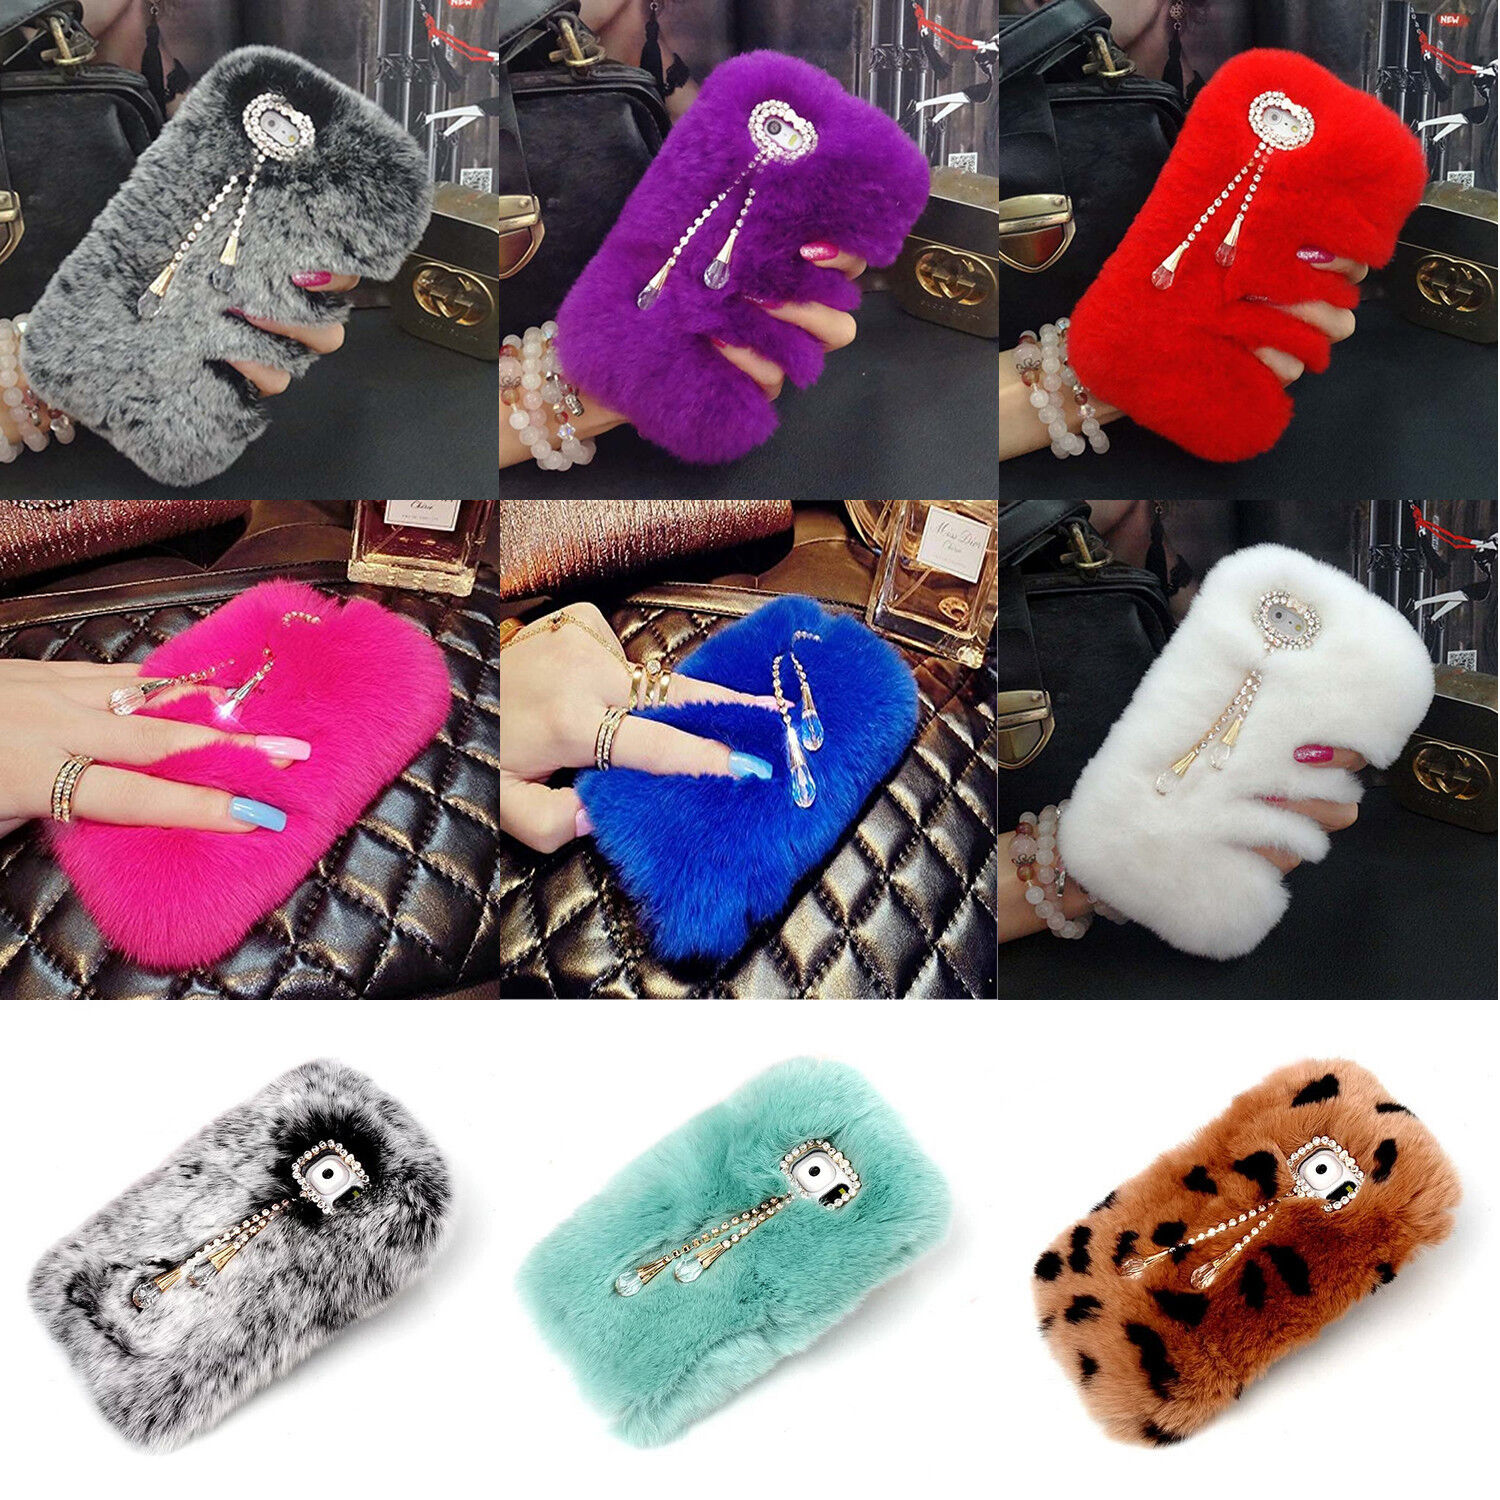 x-10-phone-case-gray-furry-for-apple-iphone-8-7-plus-accessories-cheap